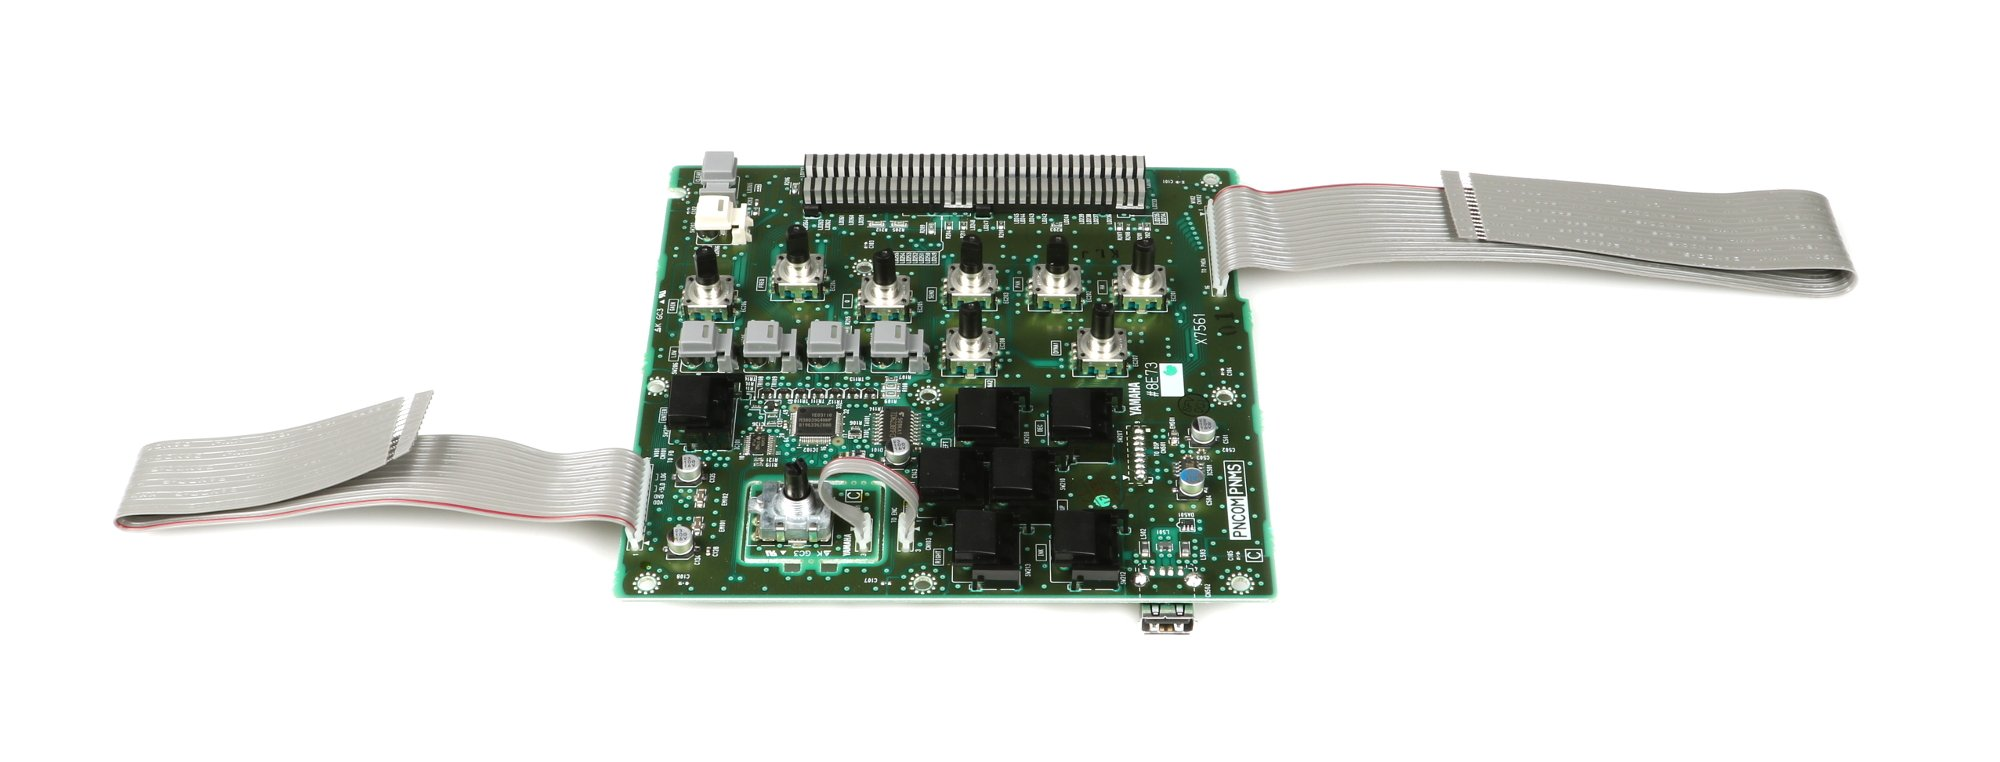 Jog Wheel/Meter PCB for LS9-16 and LS9-32